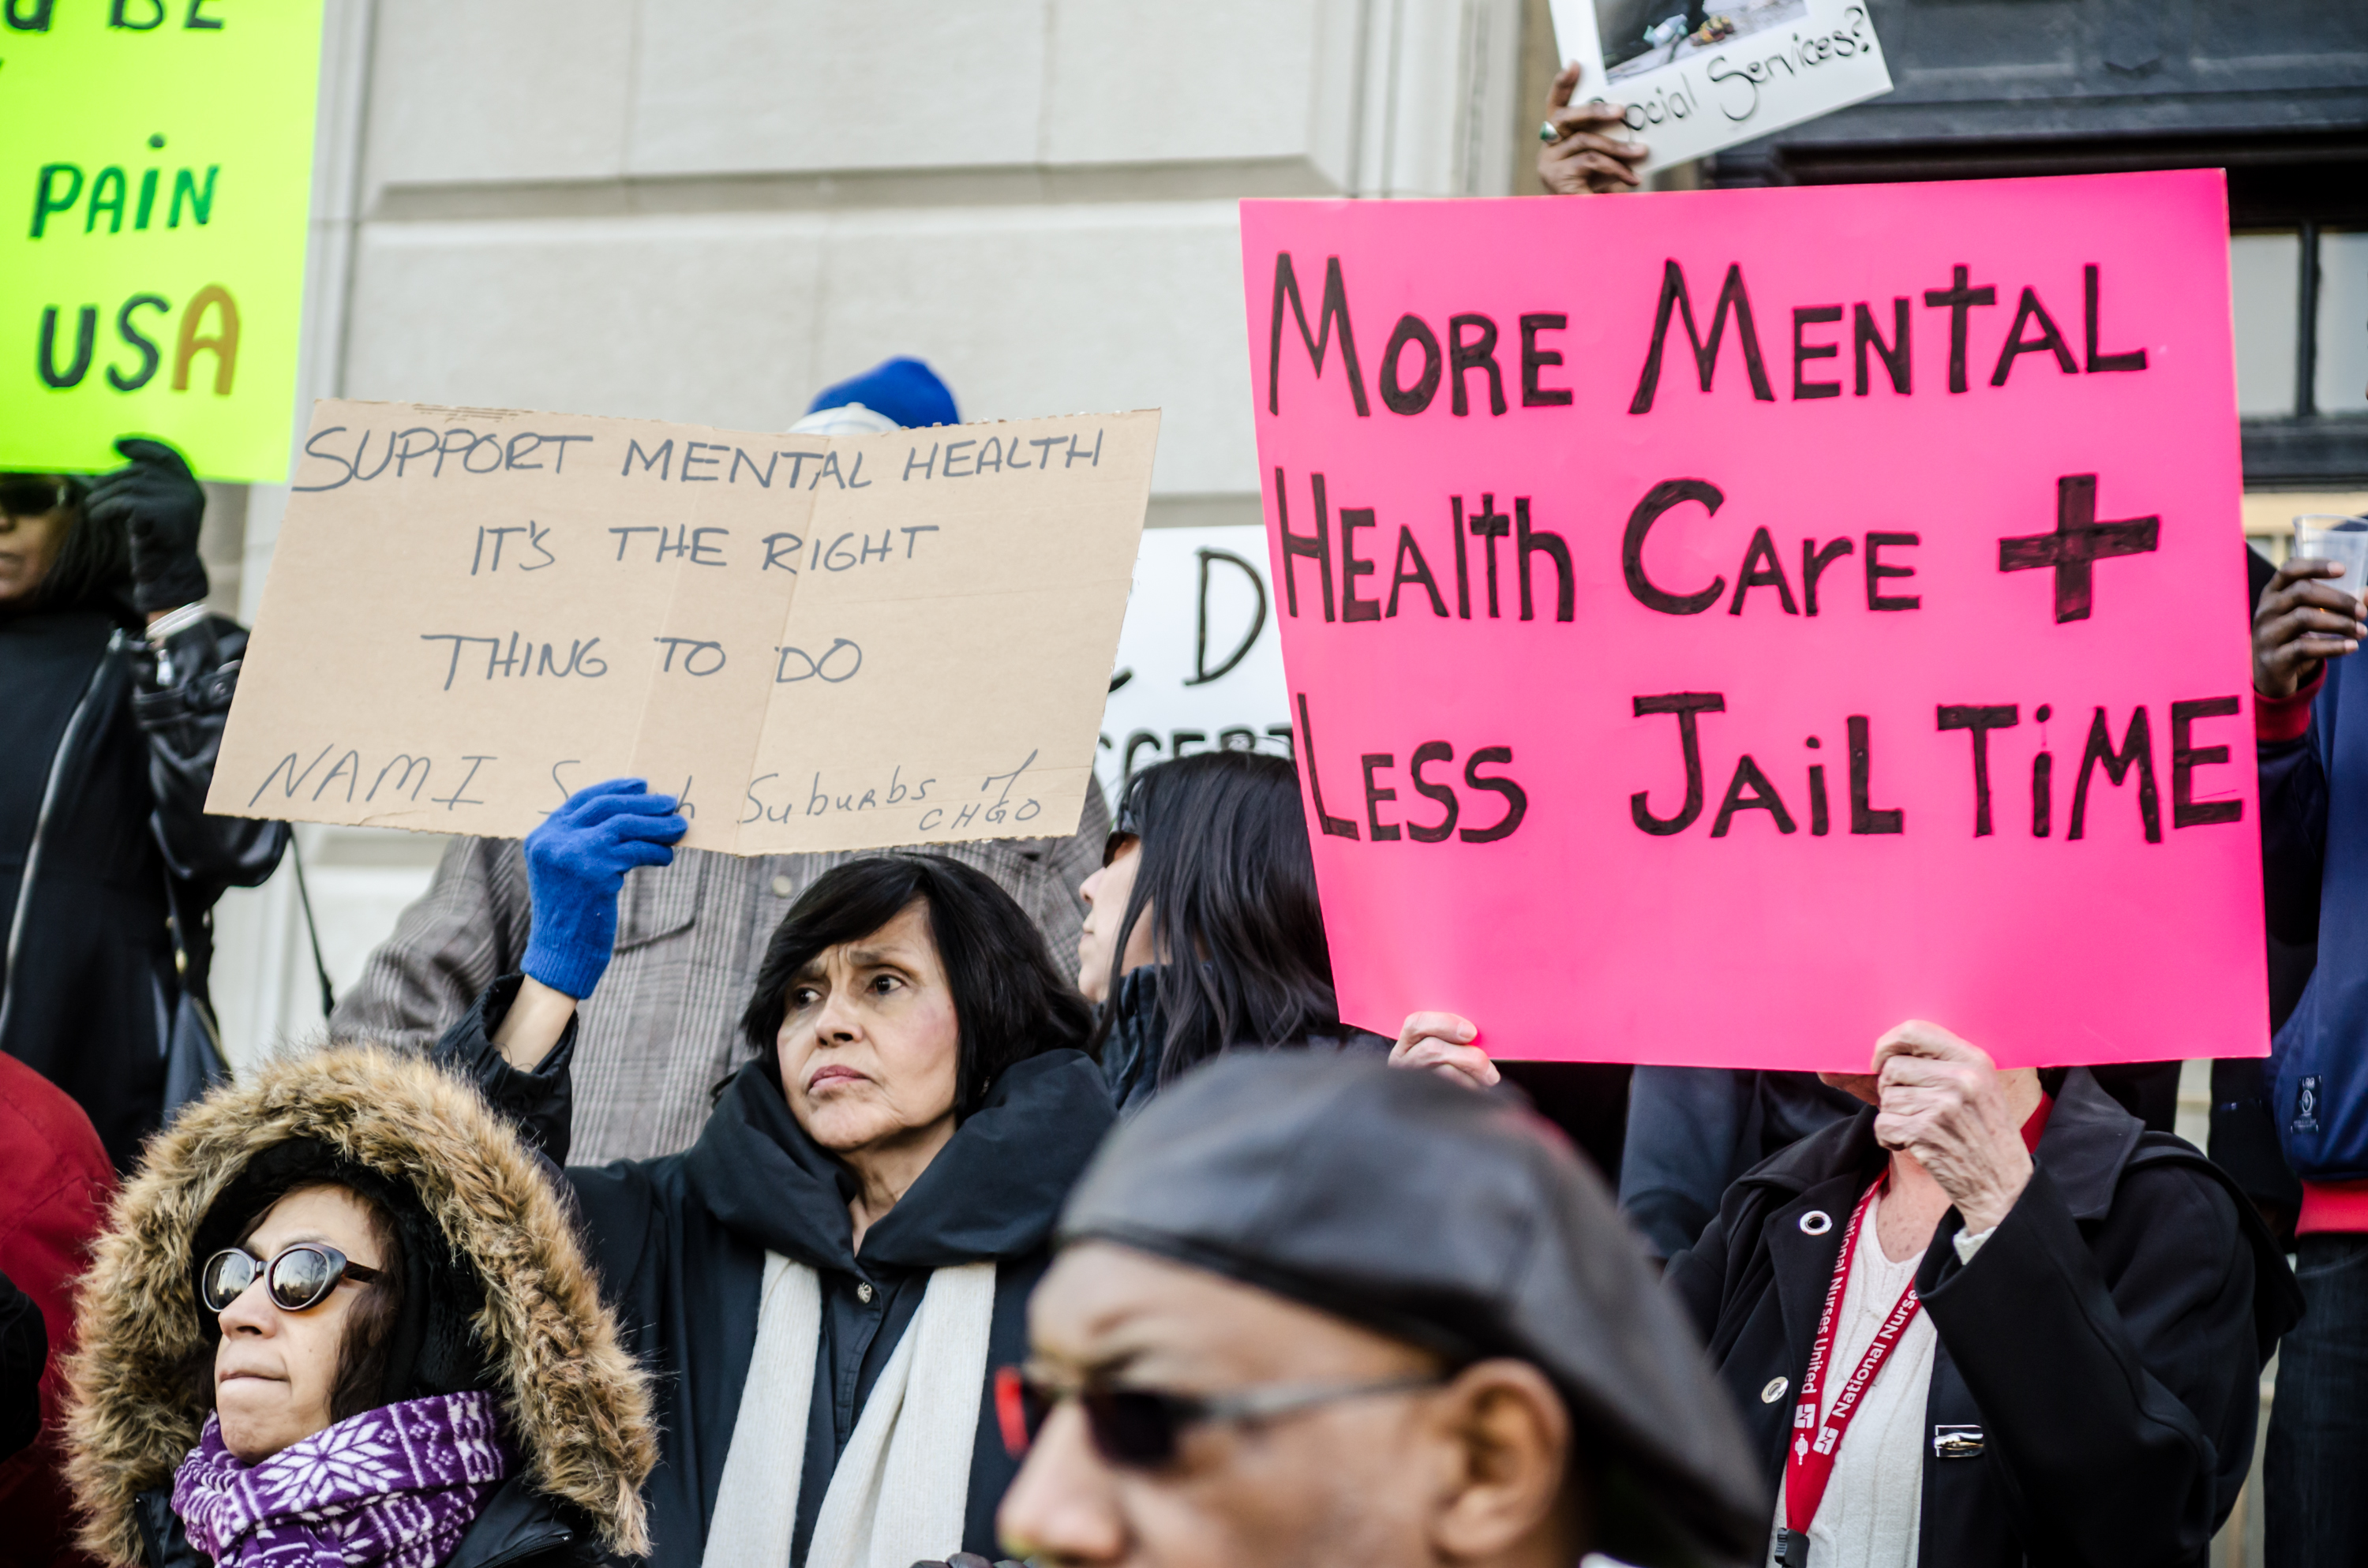 """protestor's signs that read, """"More mental health care & less jail time."""""""